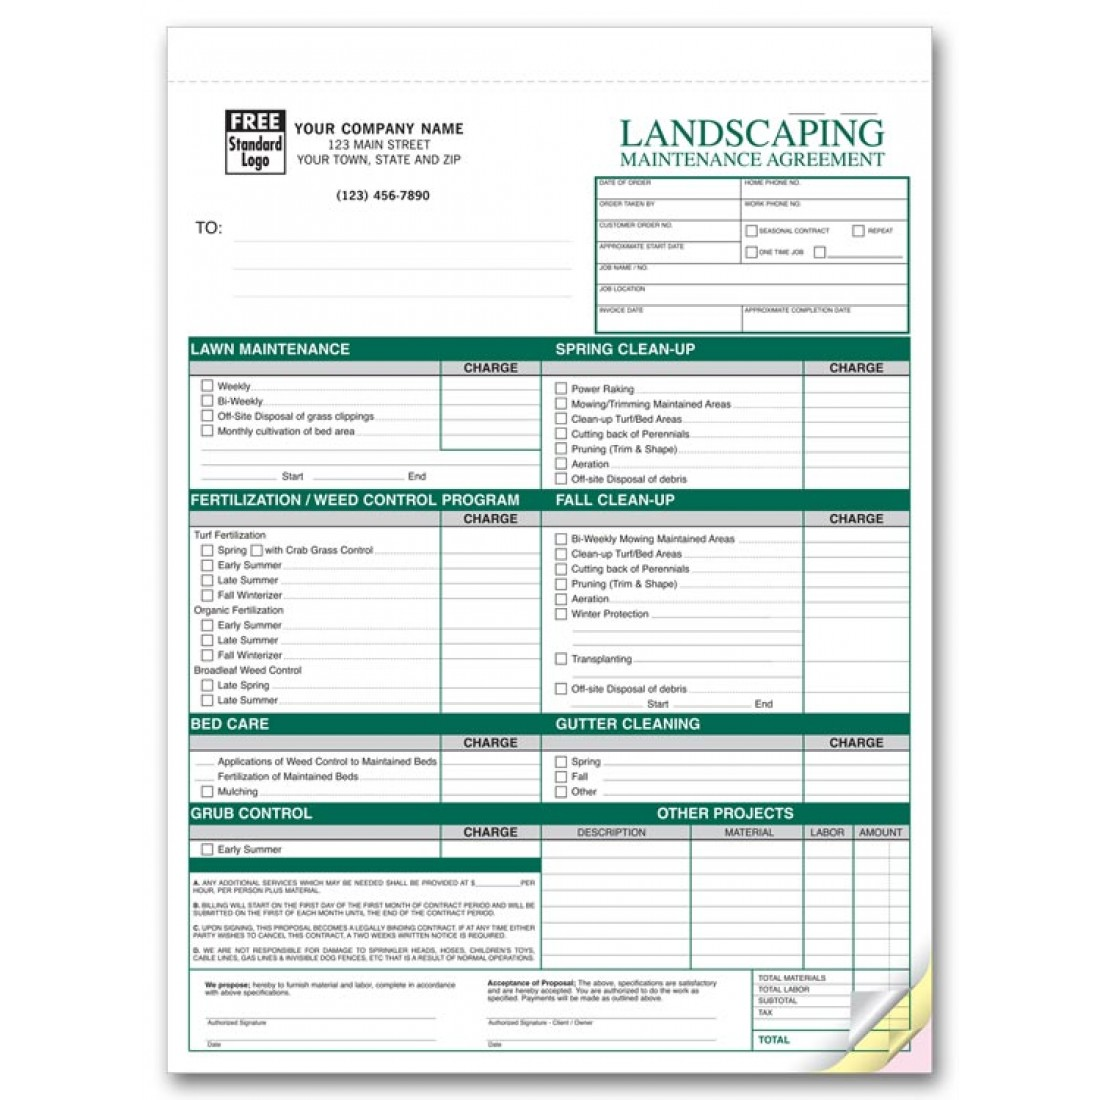 Landscaping agreement forms 6523 at print ez for Tree removal quote template